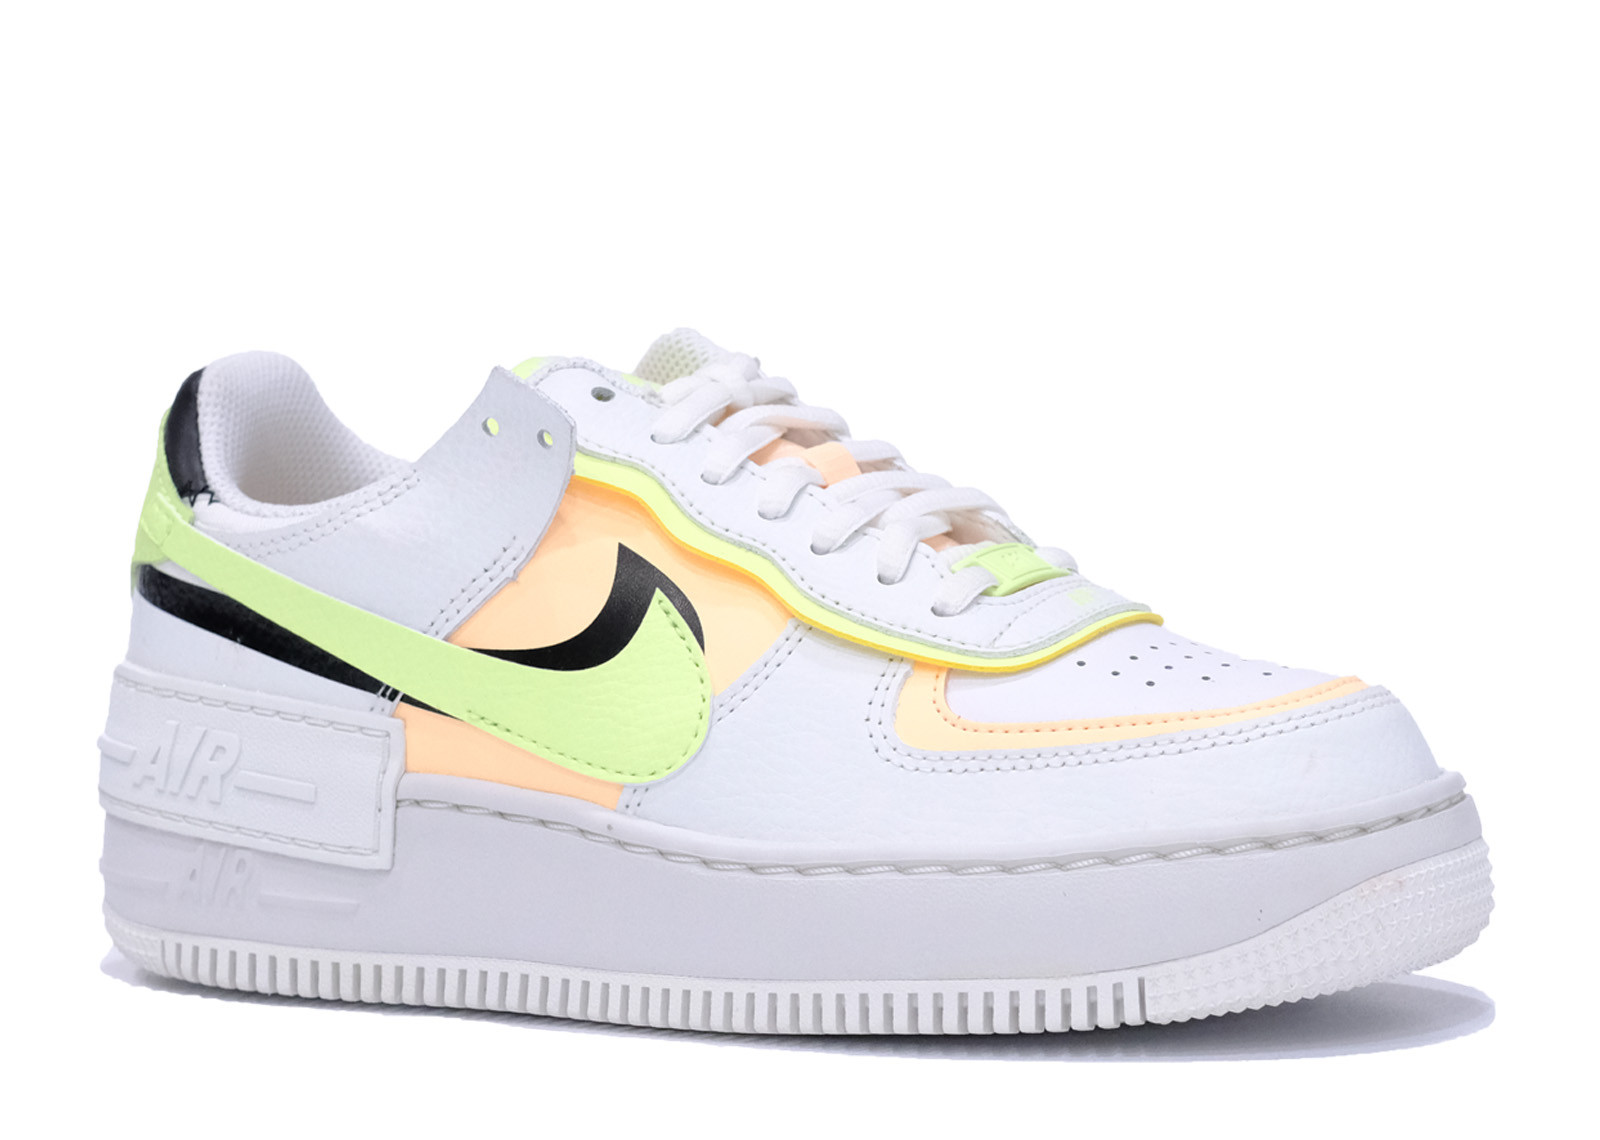 AIR FORCE 1 SHADOW BARELY VOLT CRIMSON TINT (W) image 2